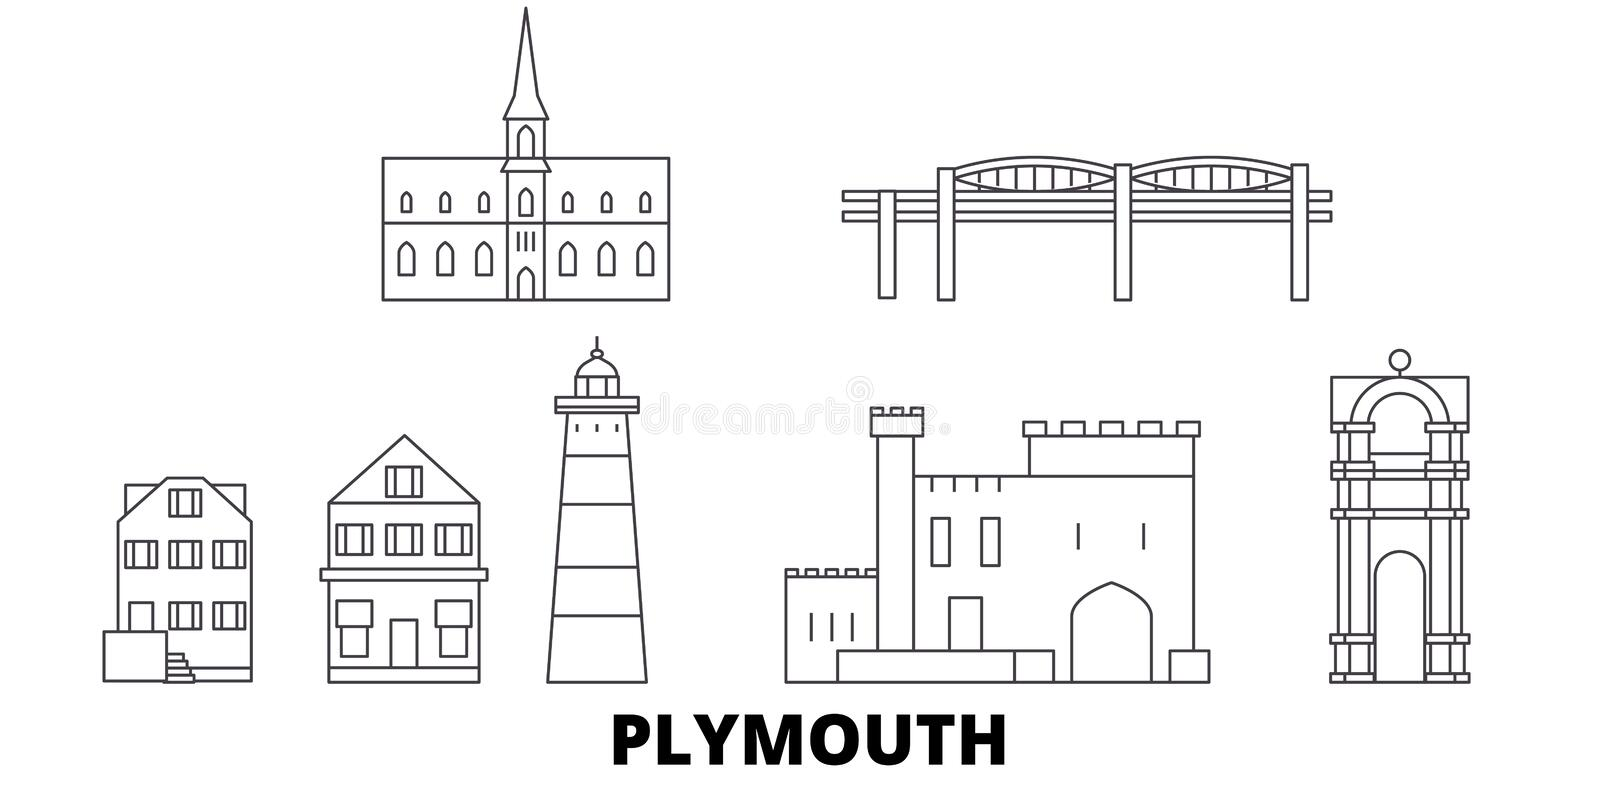 Förenade kungariket Plymouth linje lopphorisontuppsättning Förenade kungariket illustration för vektor för Plymouth översiktsstad vektor illustrationer